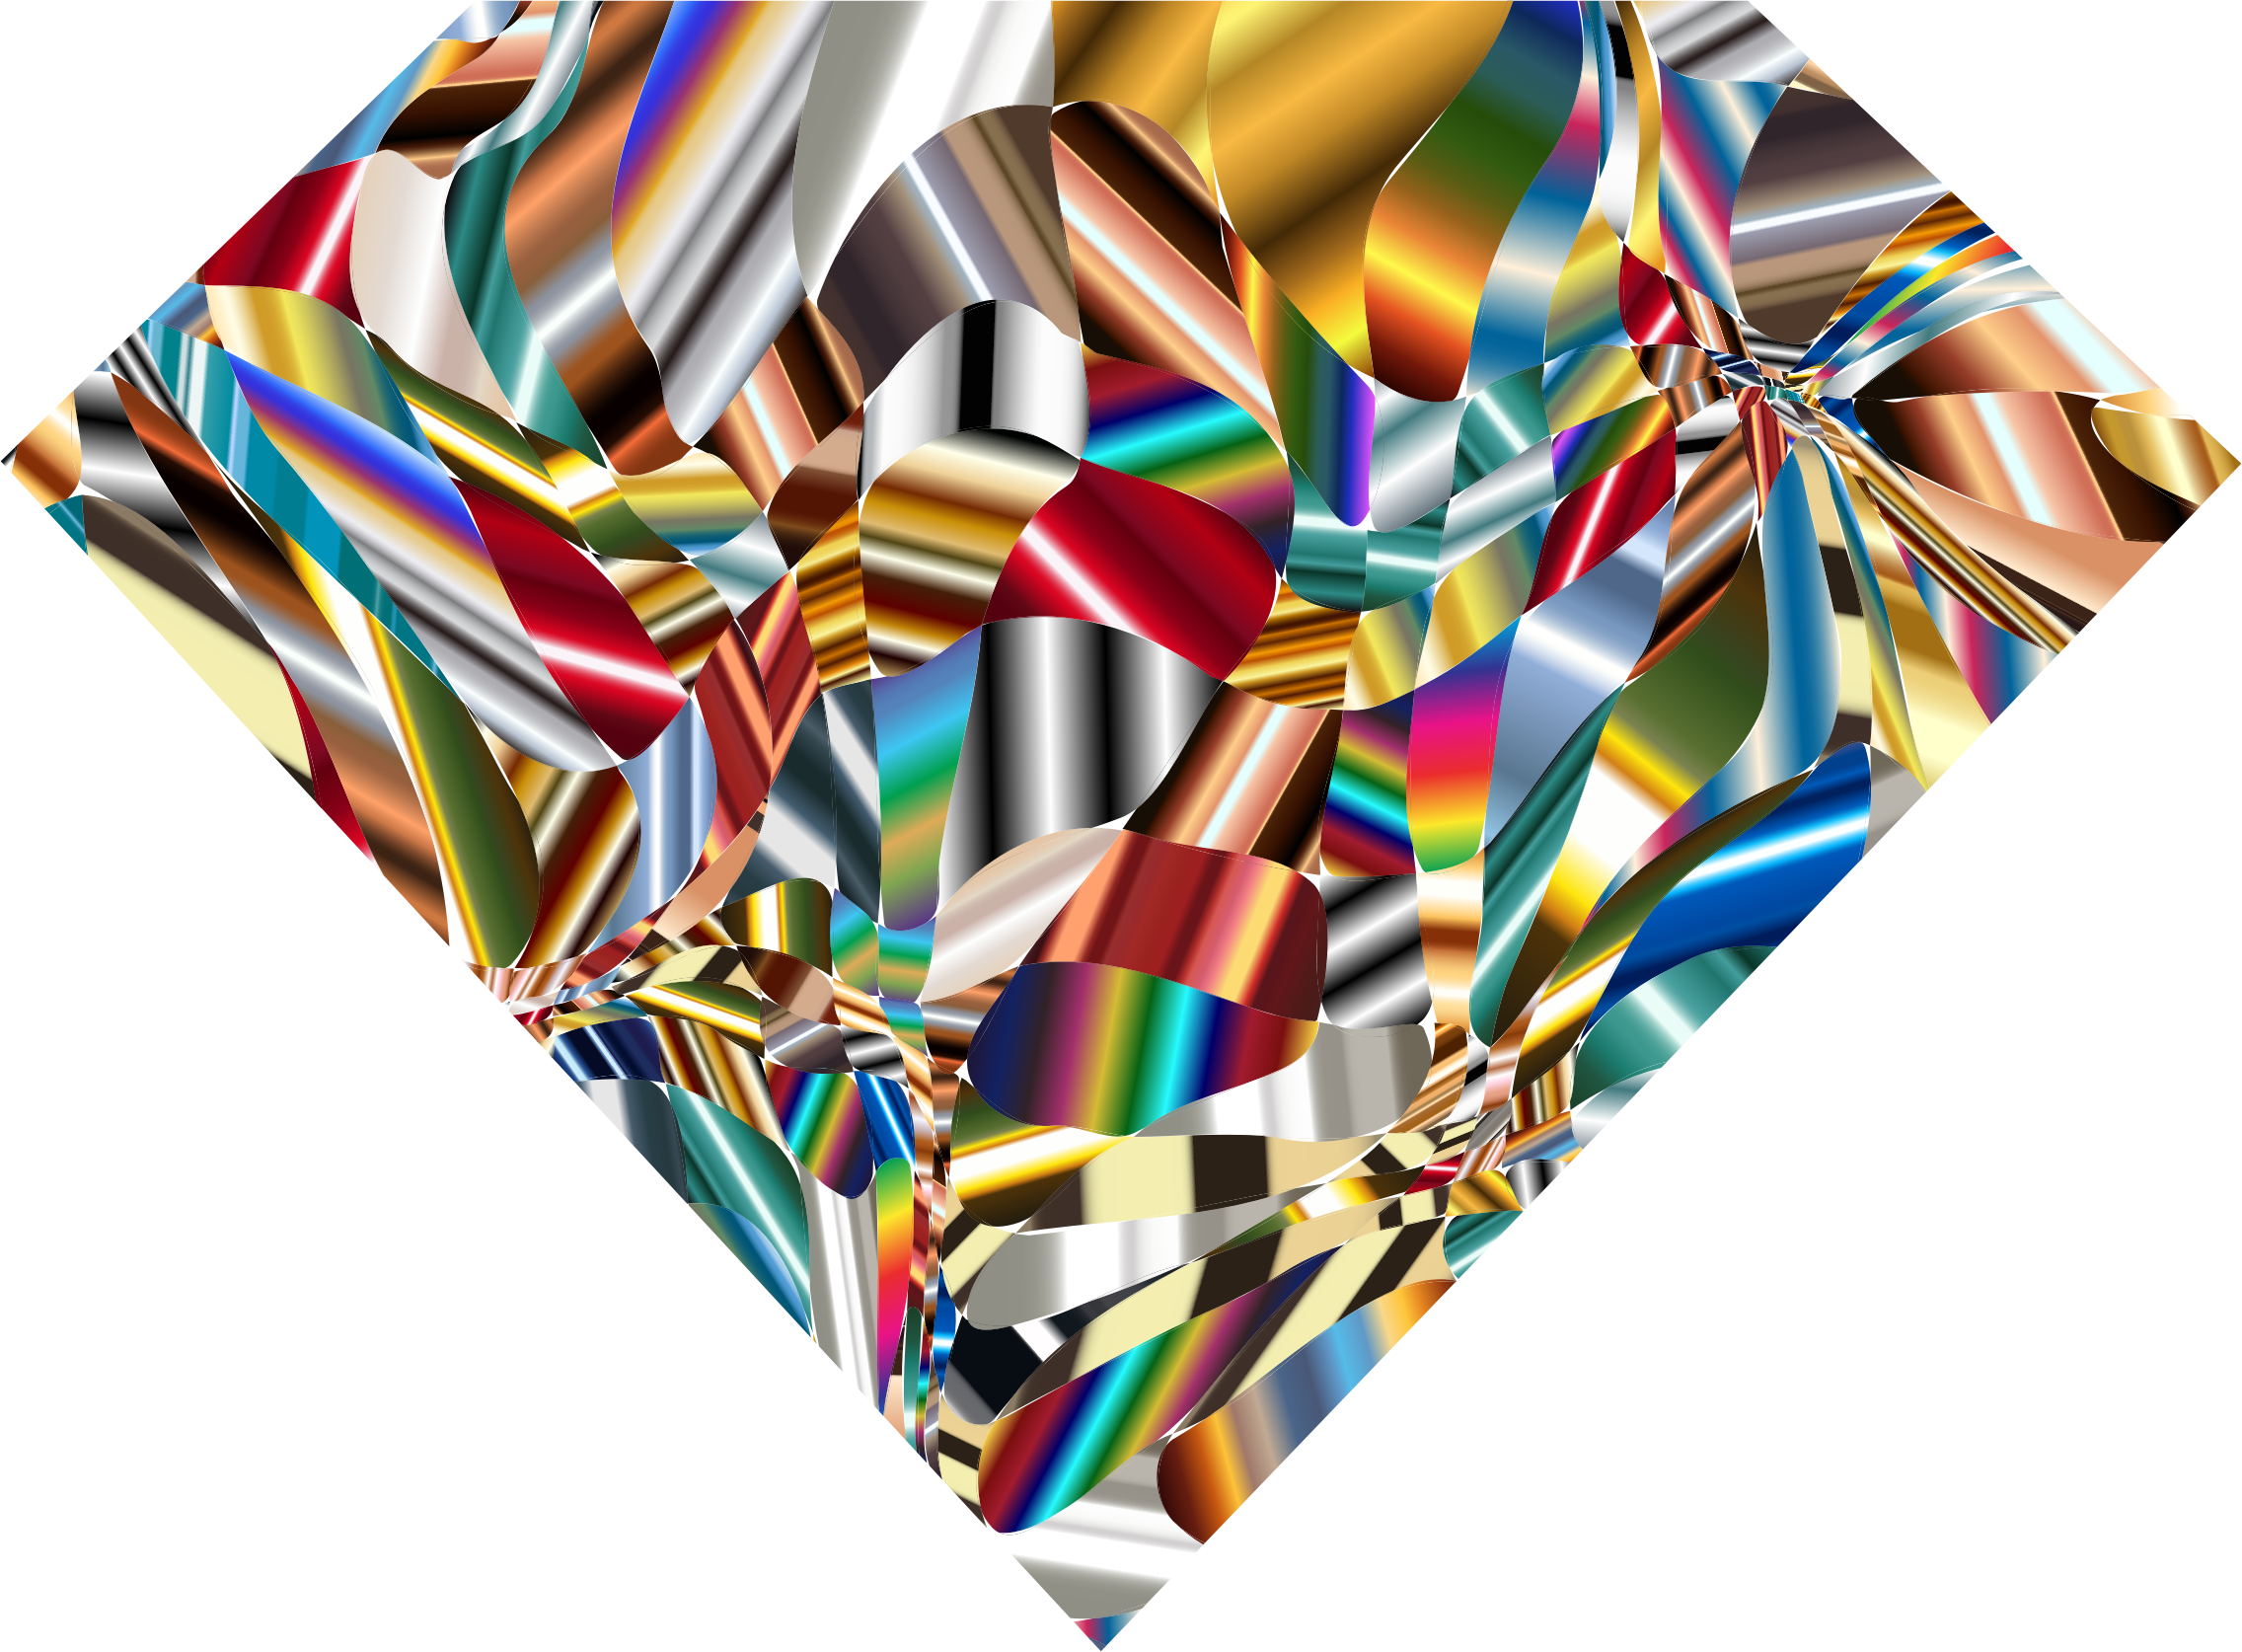 Prismatic Chaos Diamond 8 by GDJ